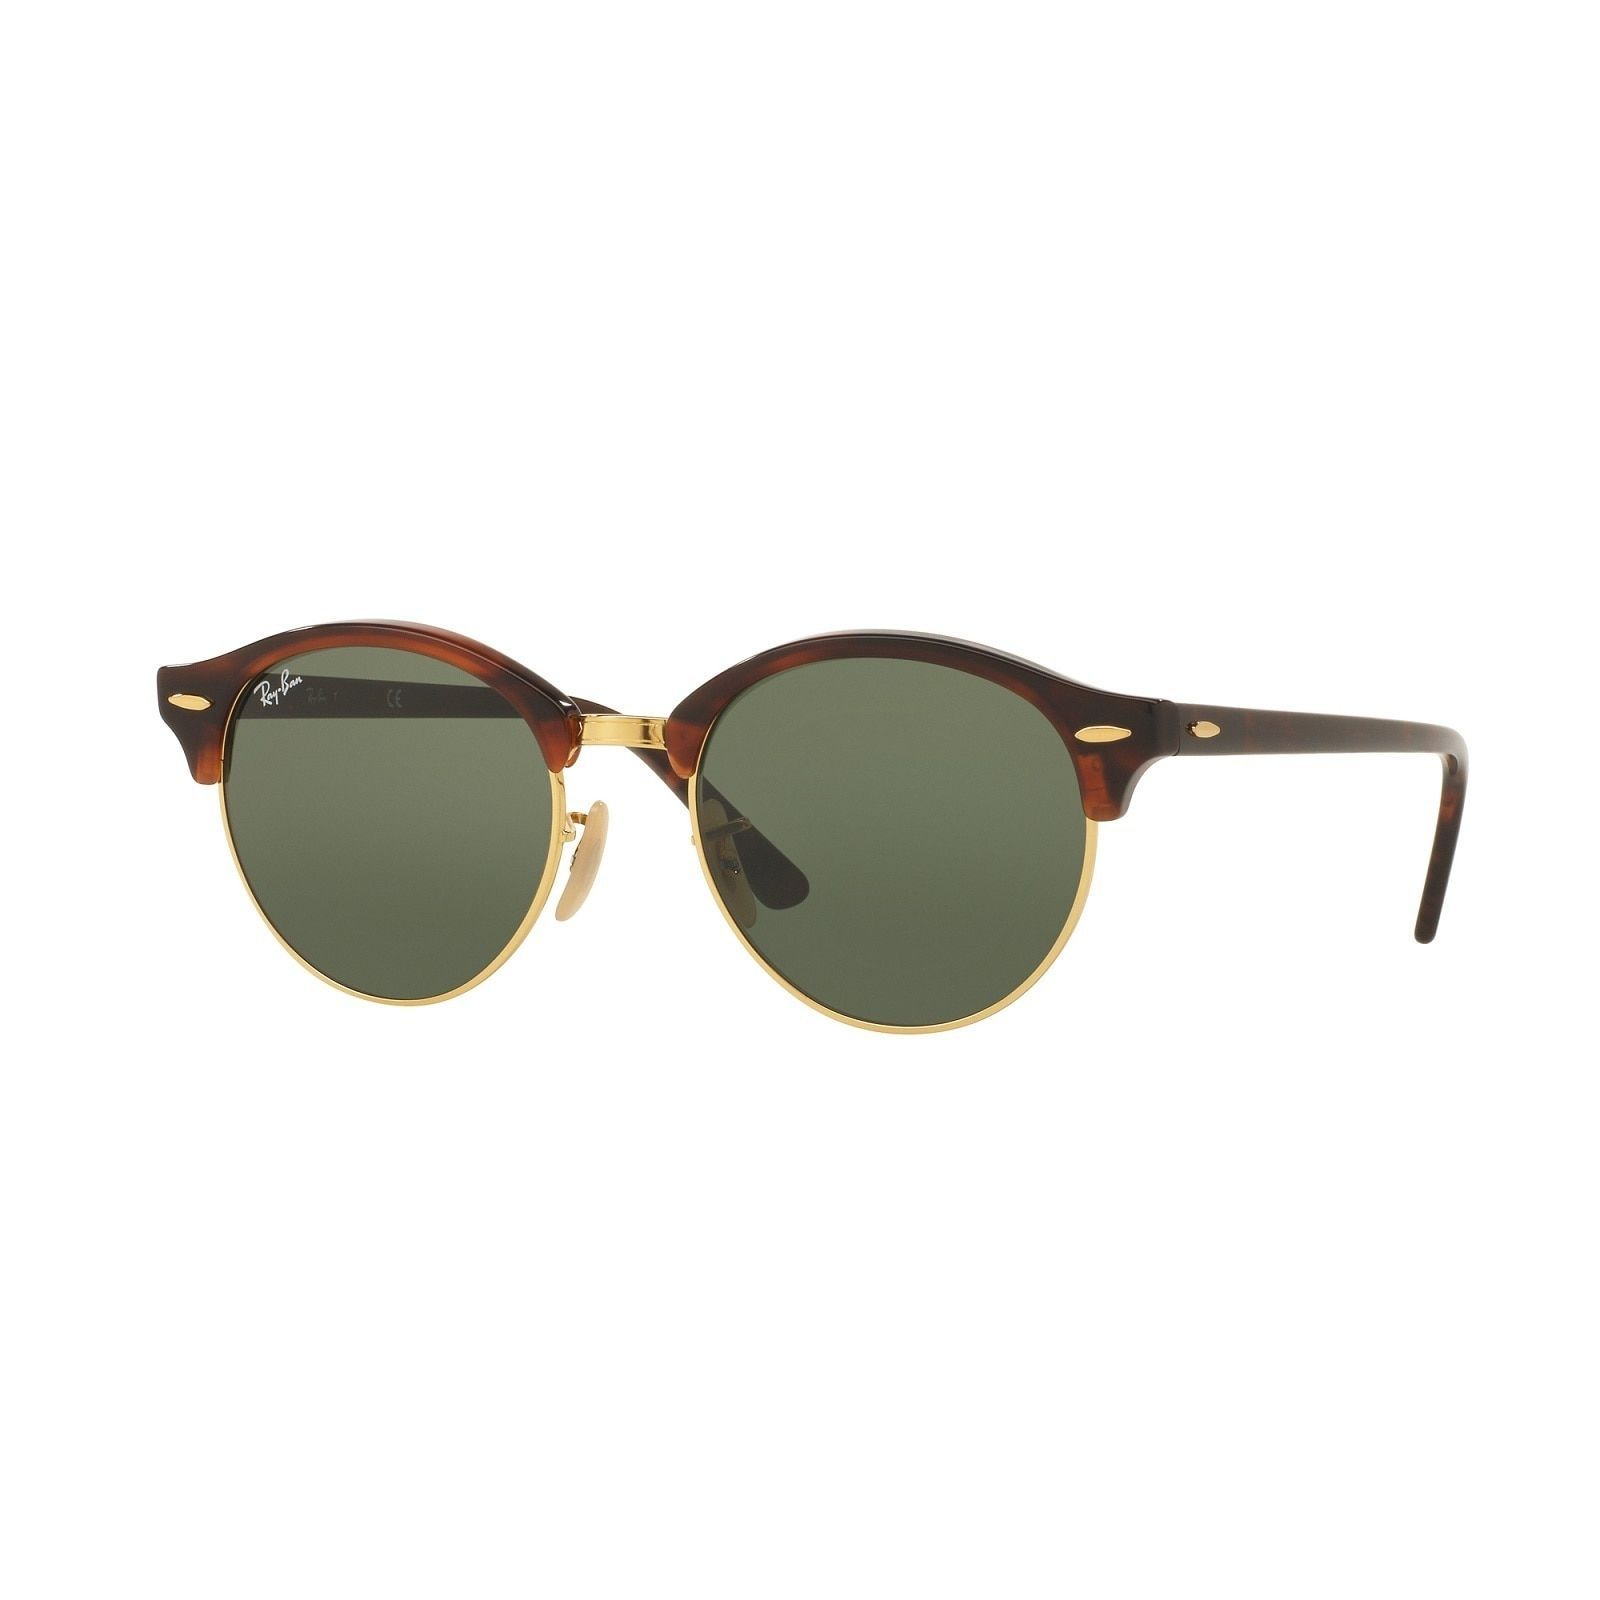 Ray-Ban Unisex RB4246 990 Clubround Frame Green Classic